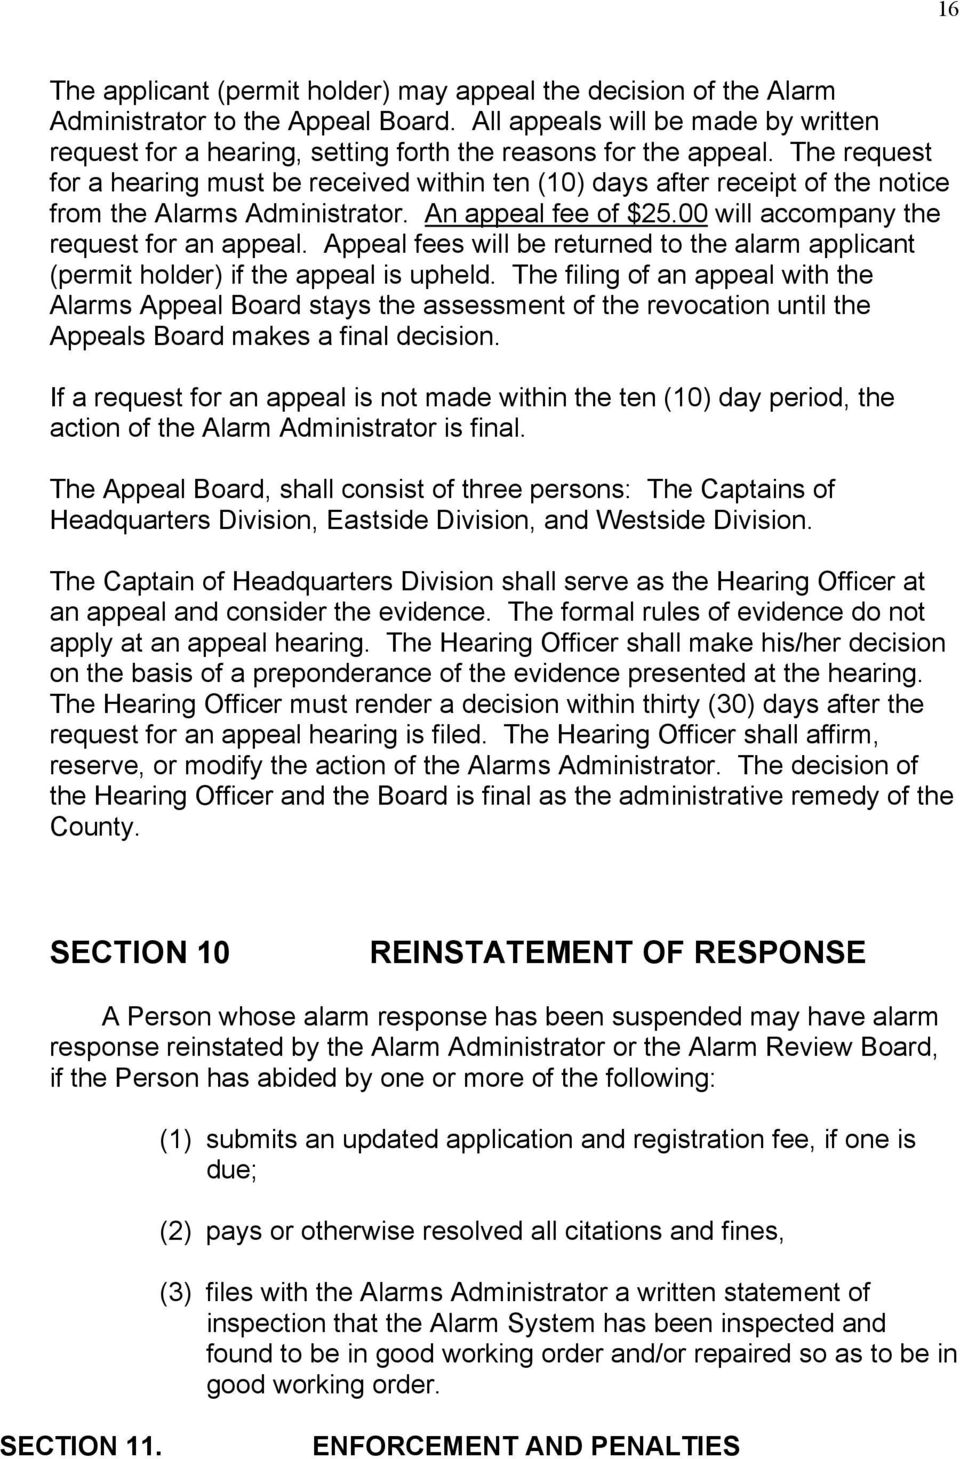 The request for a hearing must be received within ten (10) days after receipt of the notice from the Alarms Administrator. An appeal fee of $25.00 will accompany the request for an appeal.